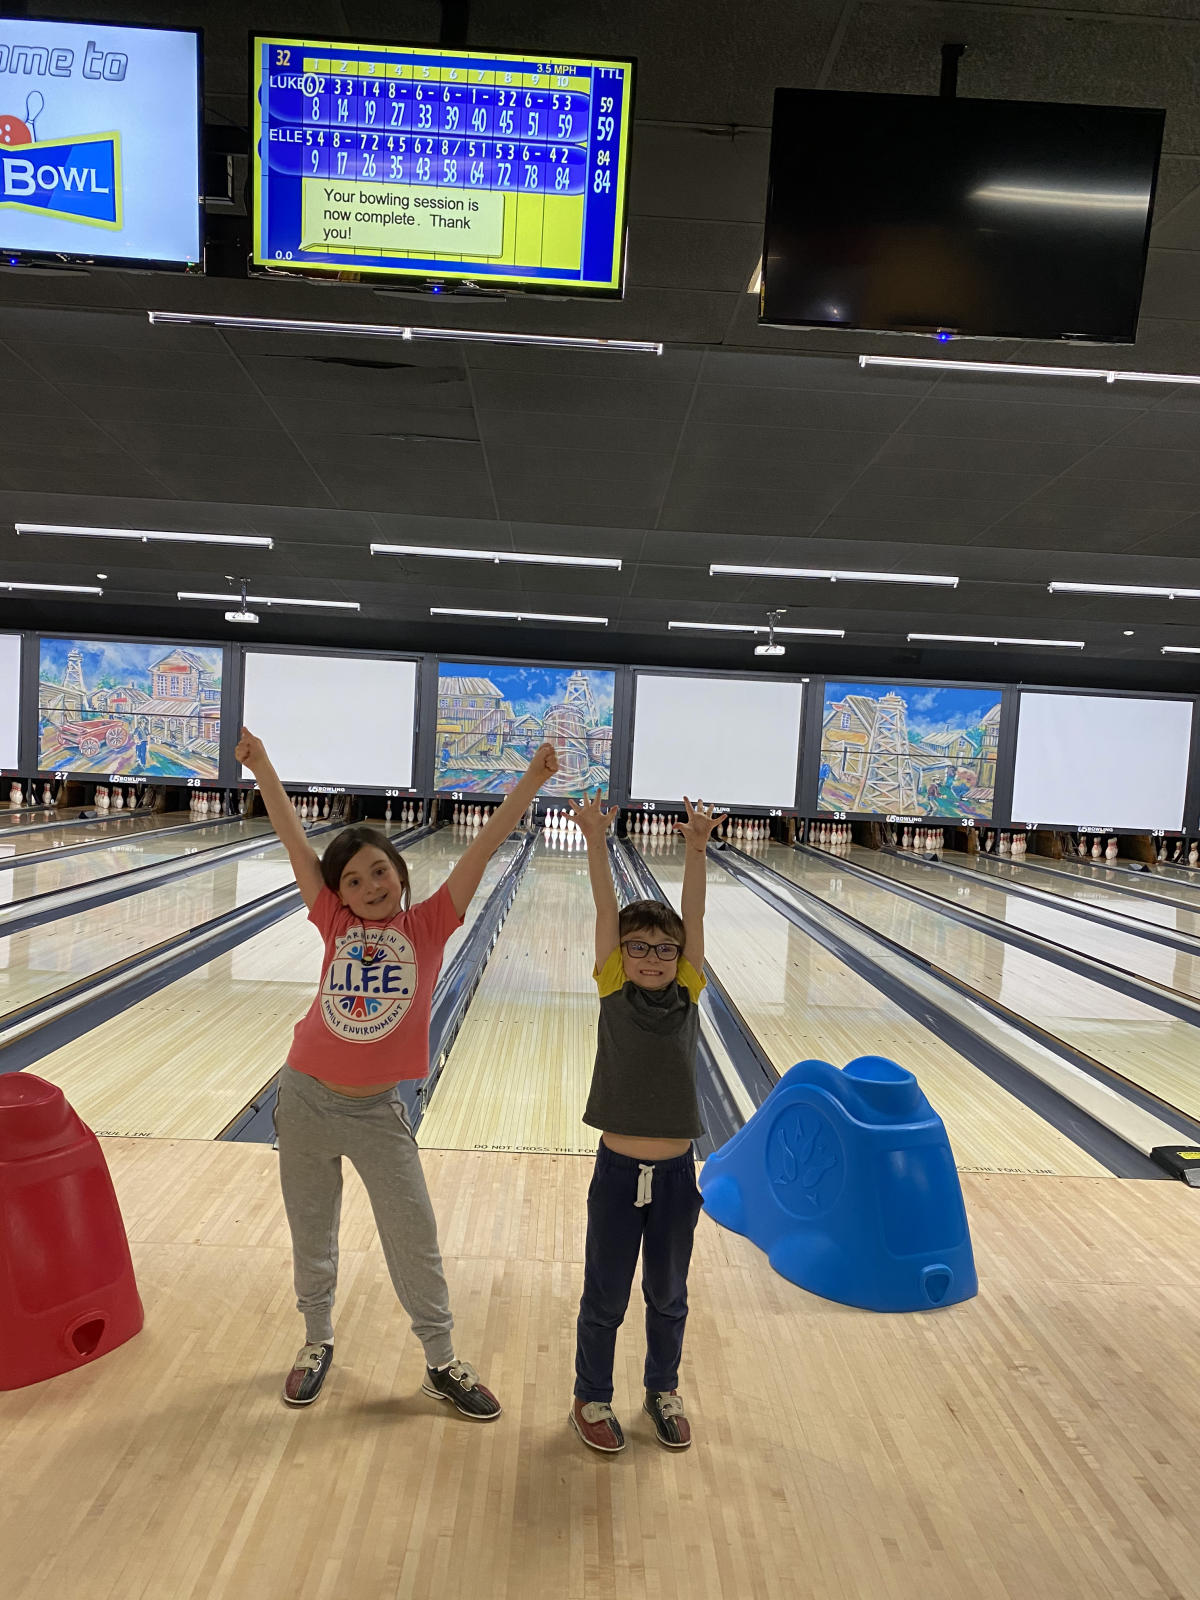 Two kids with their hands up in the air at Max Bowl